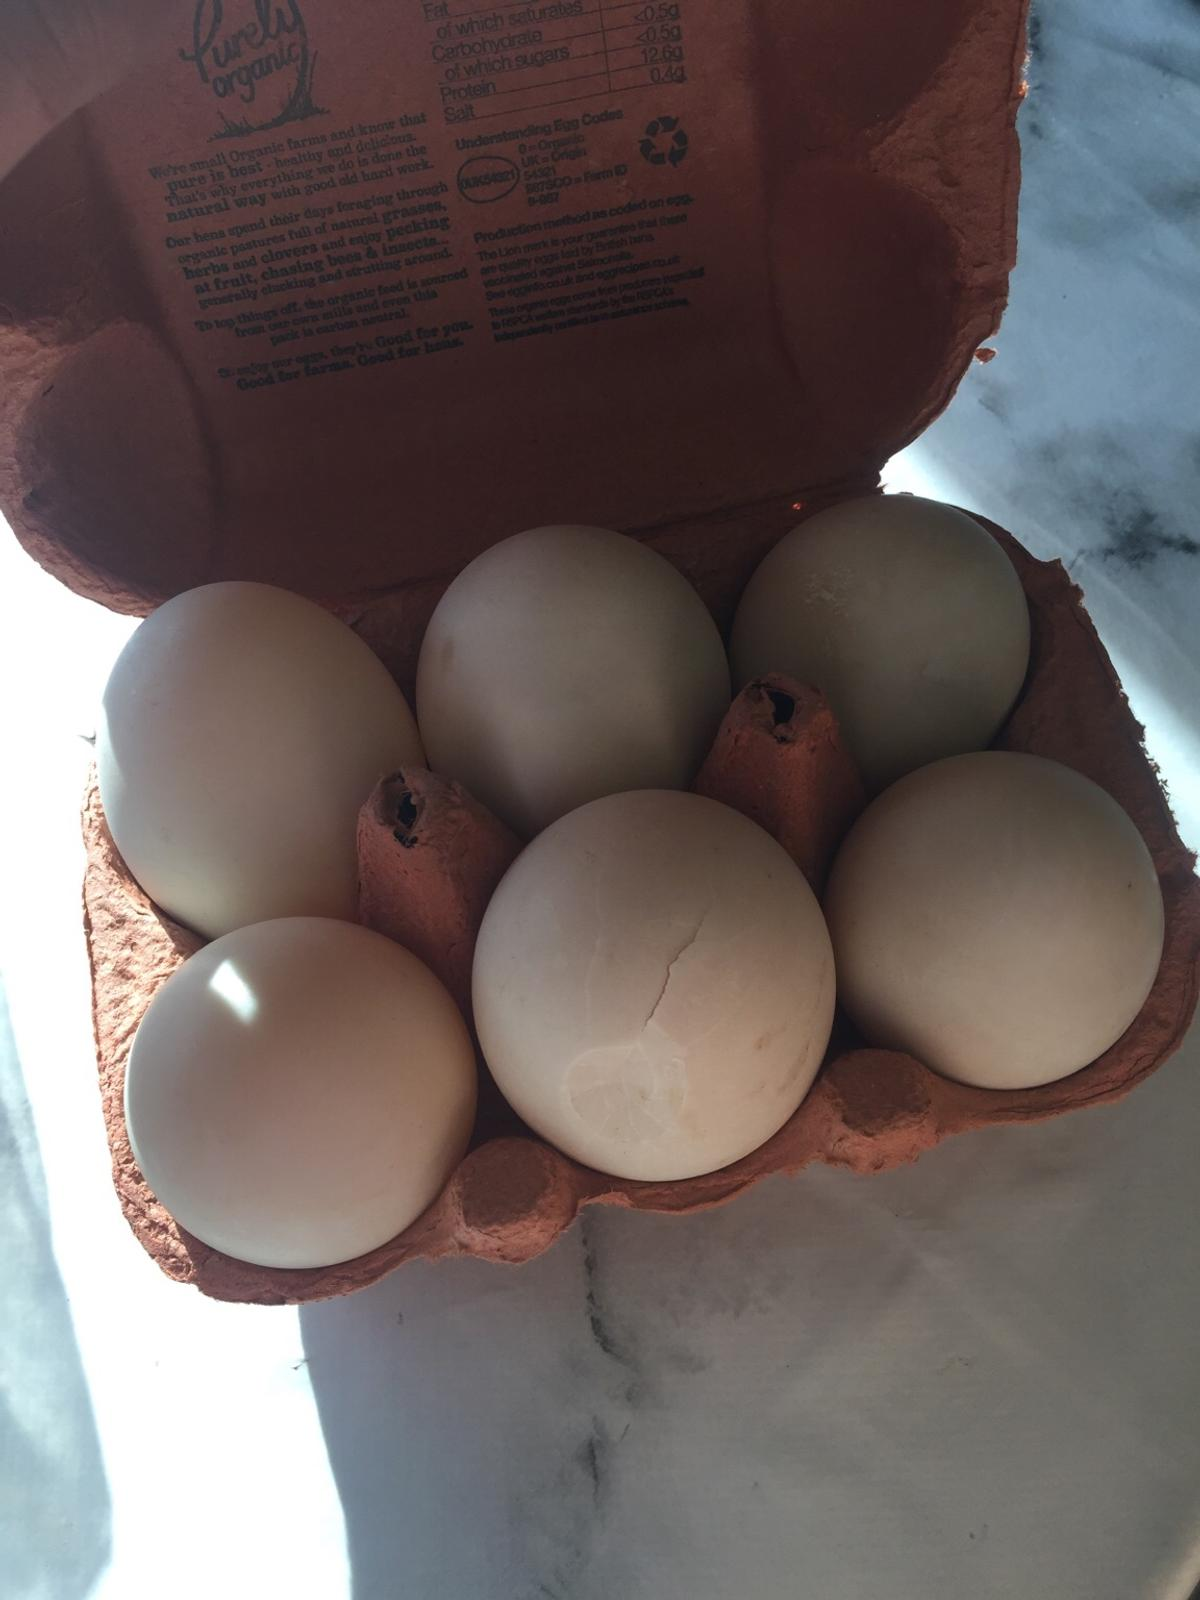 We have loads of chickens so we get fertile eggs also we have quil eggs they are deftly fertile ducks eggs is a £2 a eggs chicken eggs are £1 a egg etc etc pls comment for more info